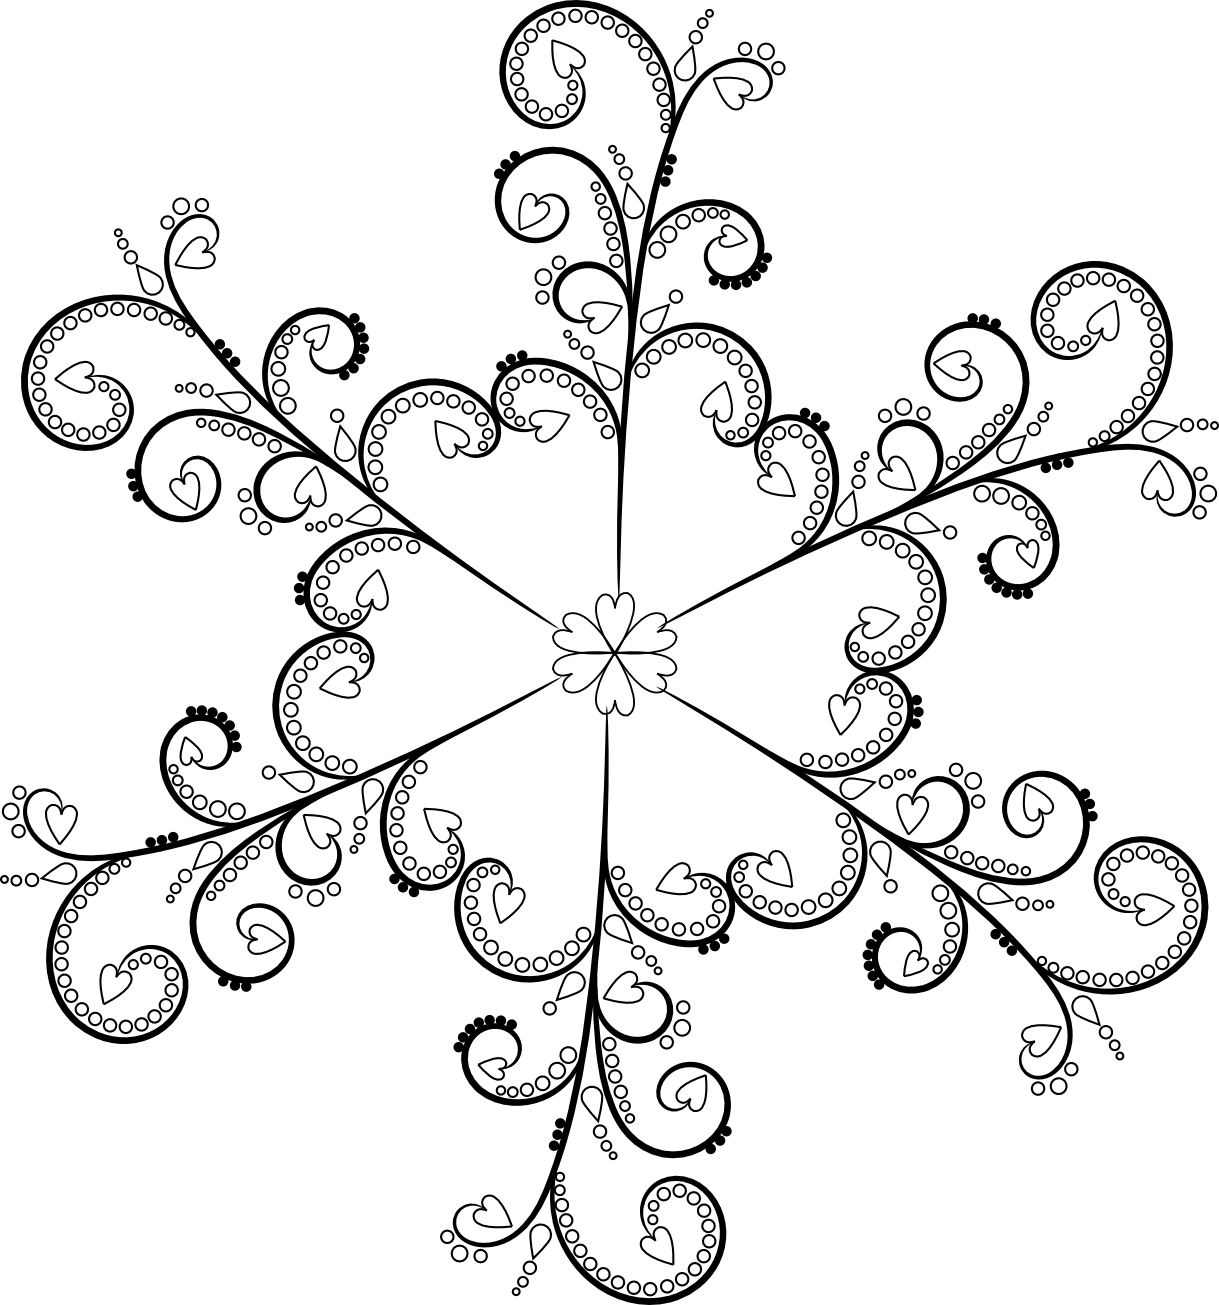 Snowflake clipart free transparent Free Snowflake Patterns Clipart | jokingart.com Snowflake Clipart transparent